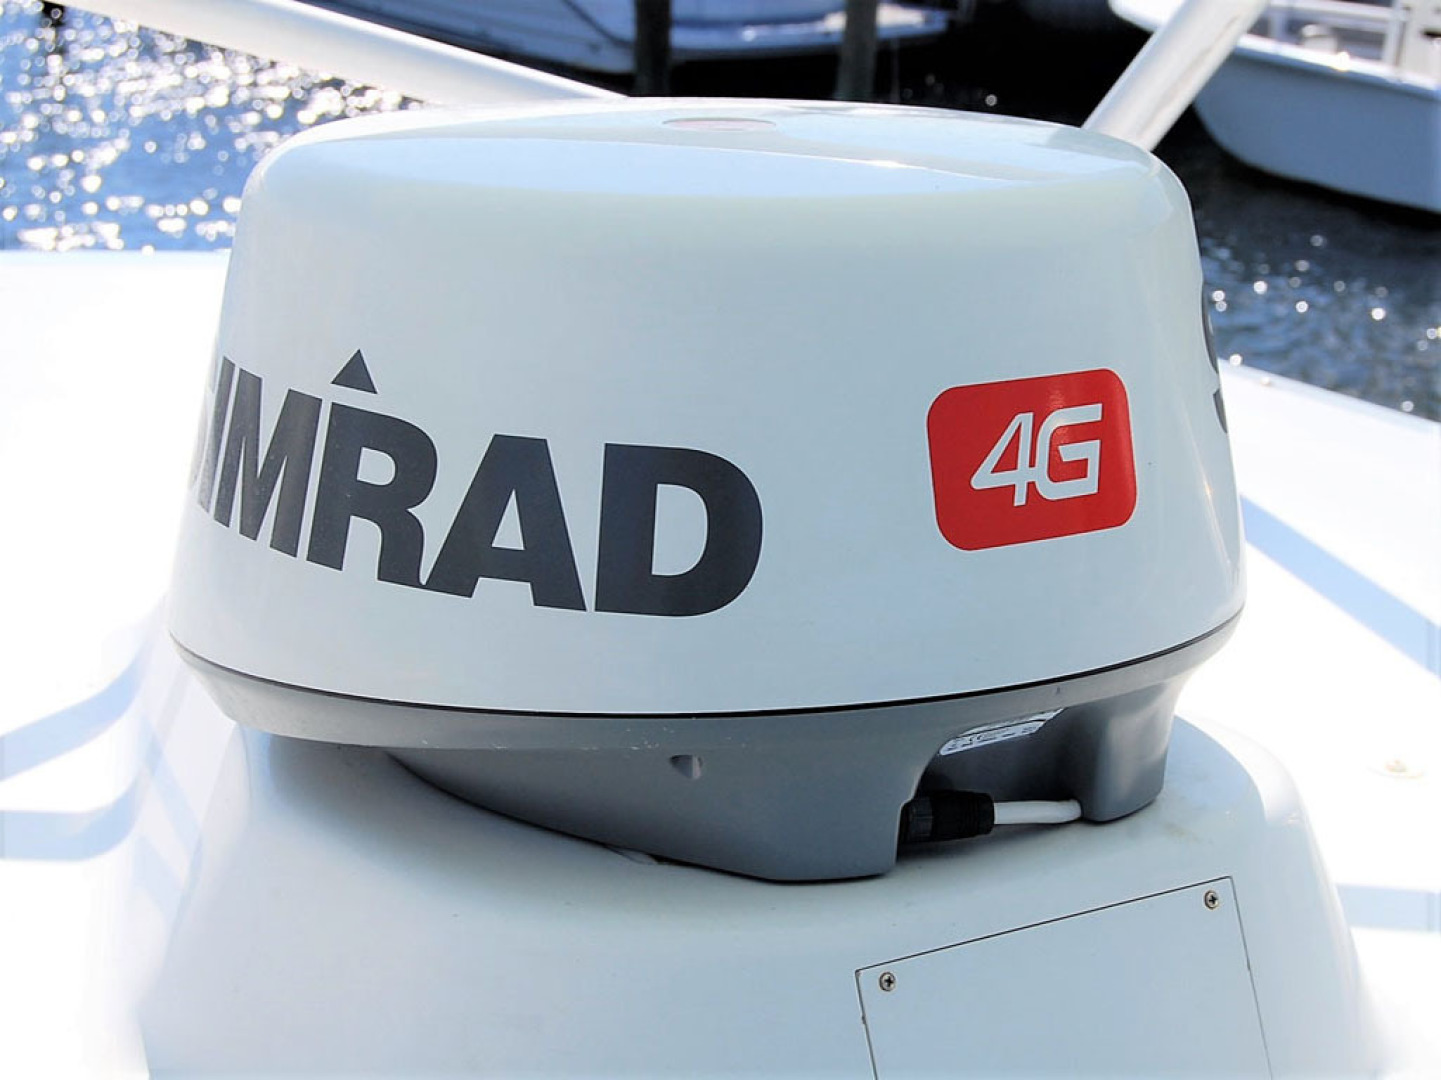 Topaz-32 Express 2004-Toots IV West Islip-New York-United States-Simrad 4G Radar-1515154 | Thumbnail